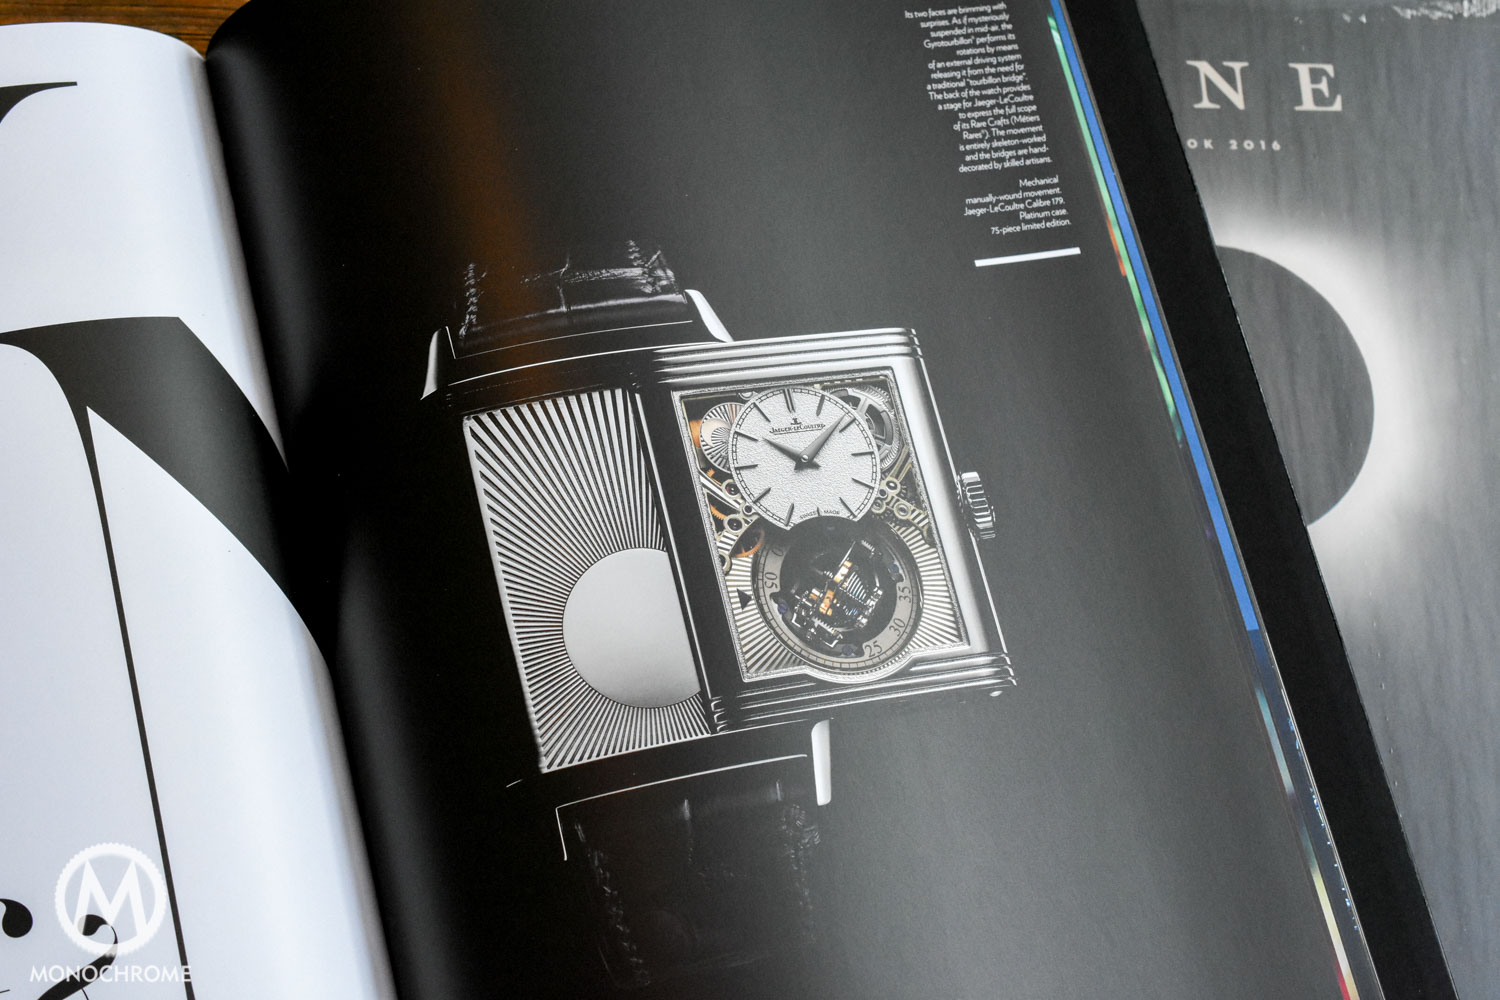 Jaeger-LeCoultre yearbook 10